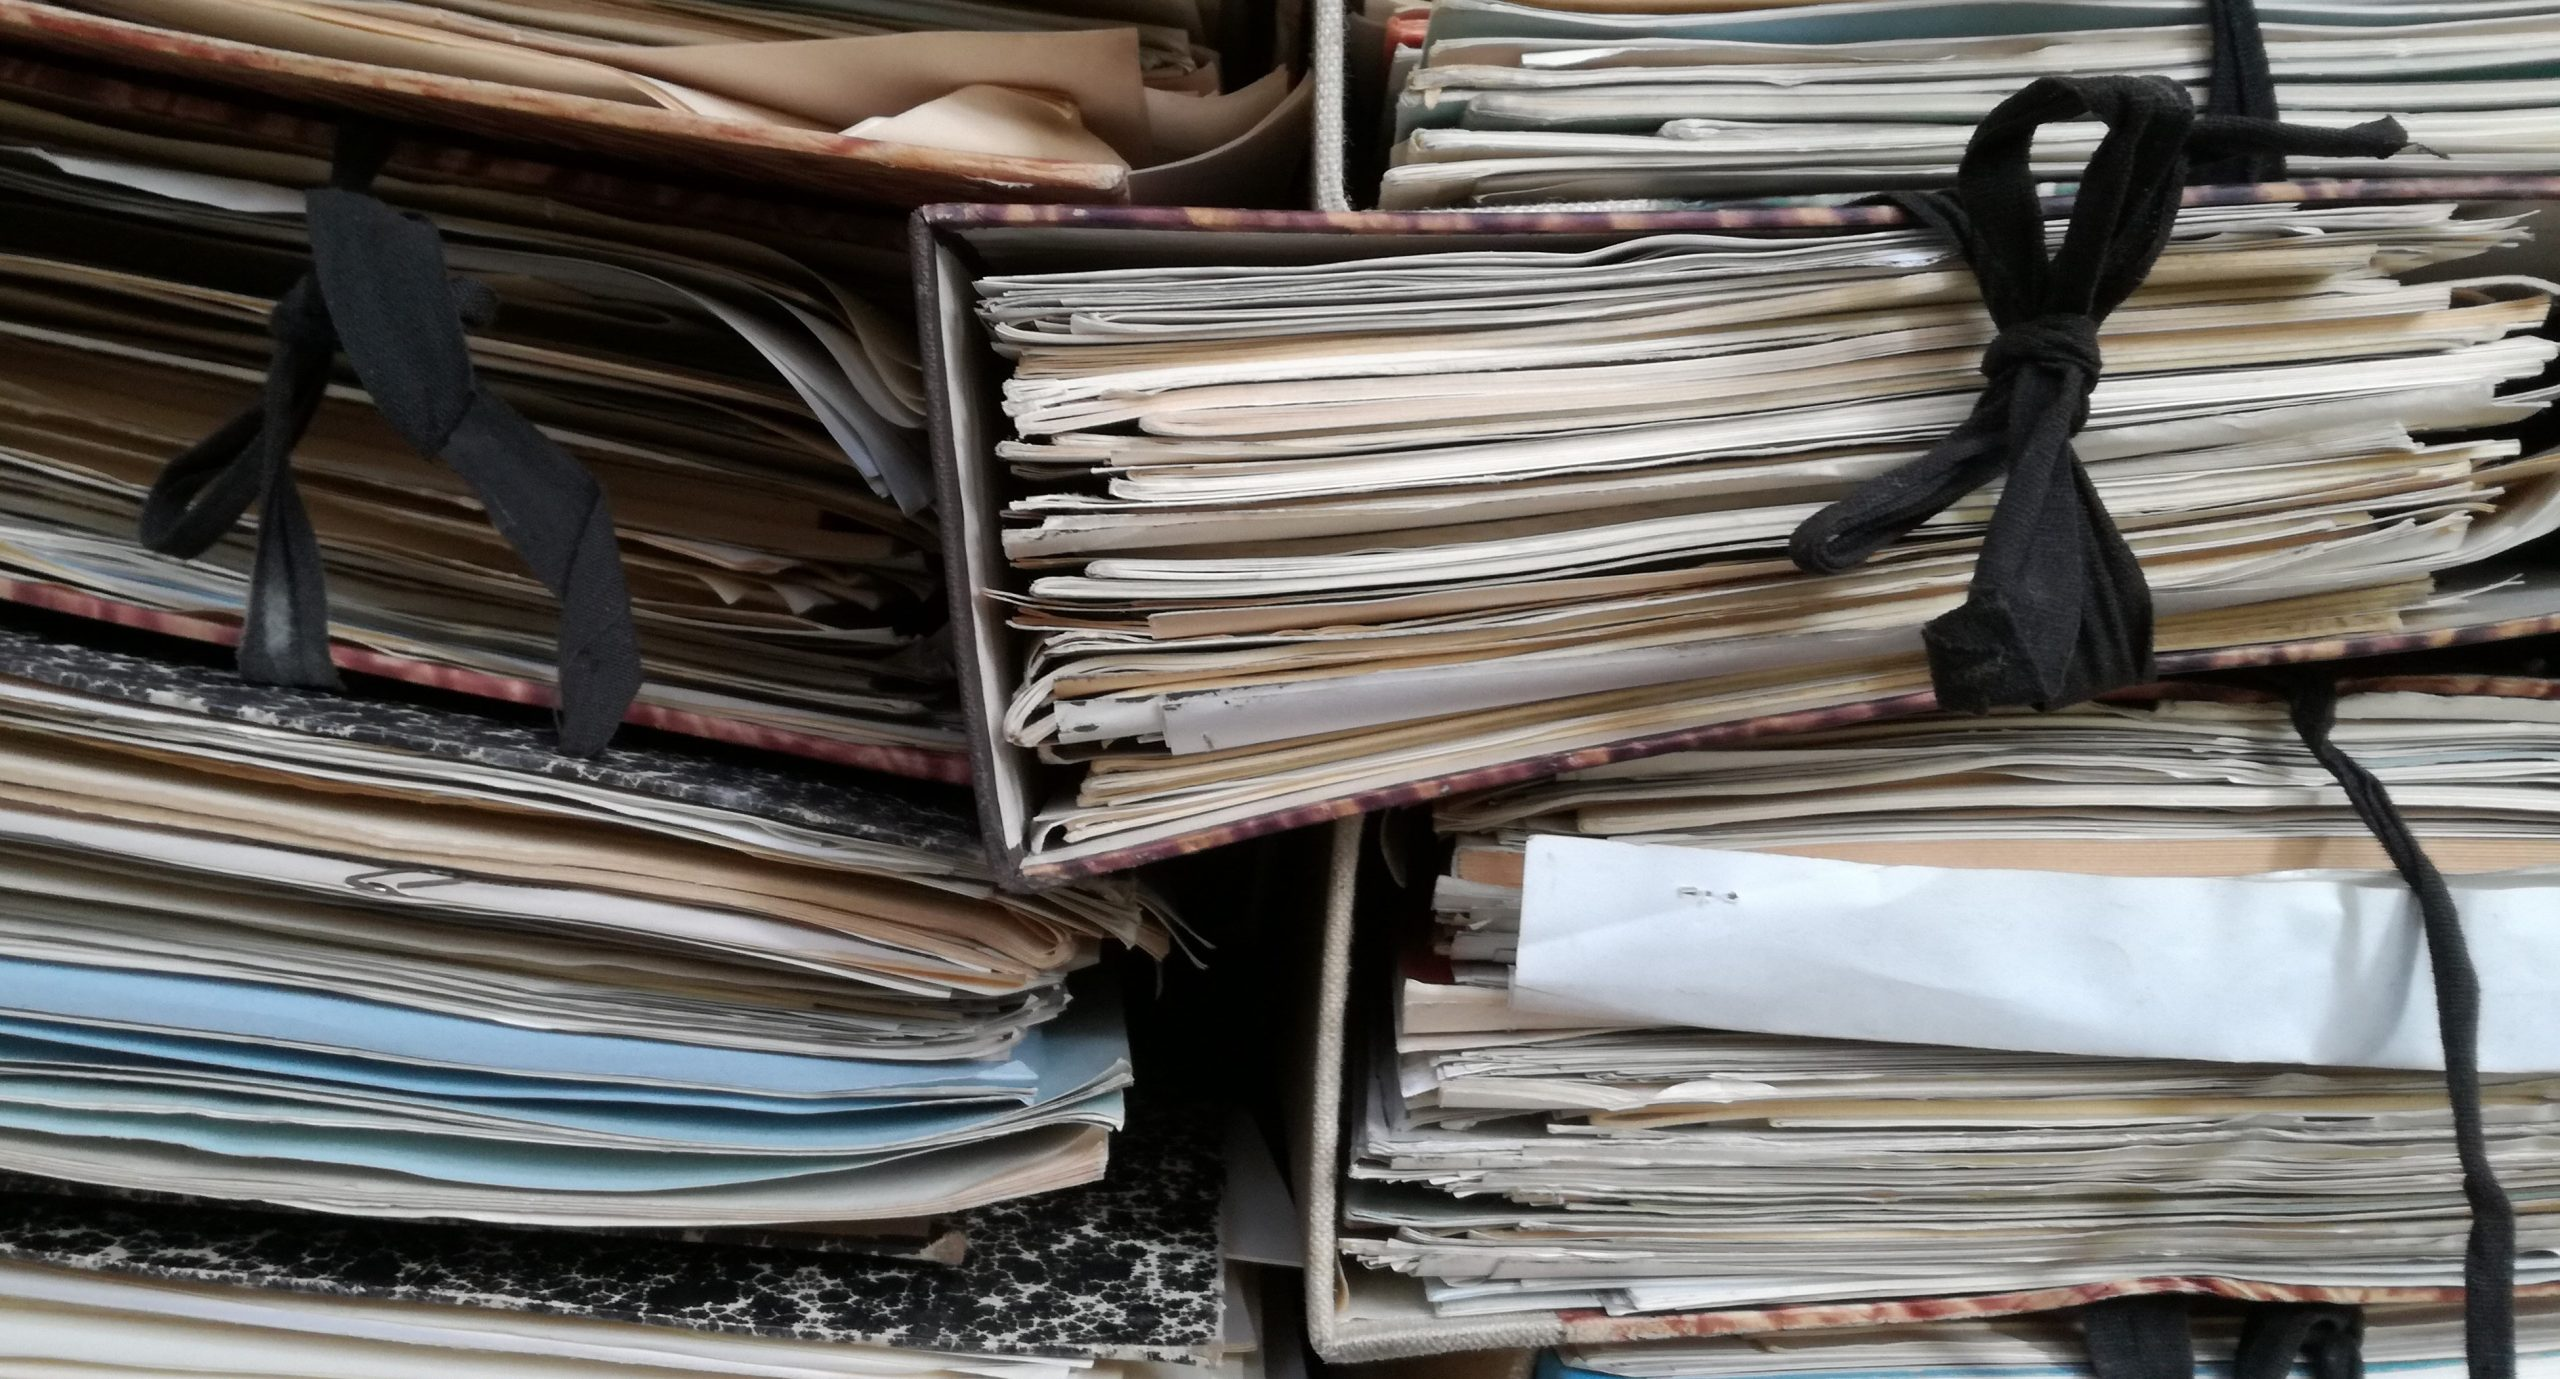 Files full of documents